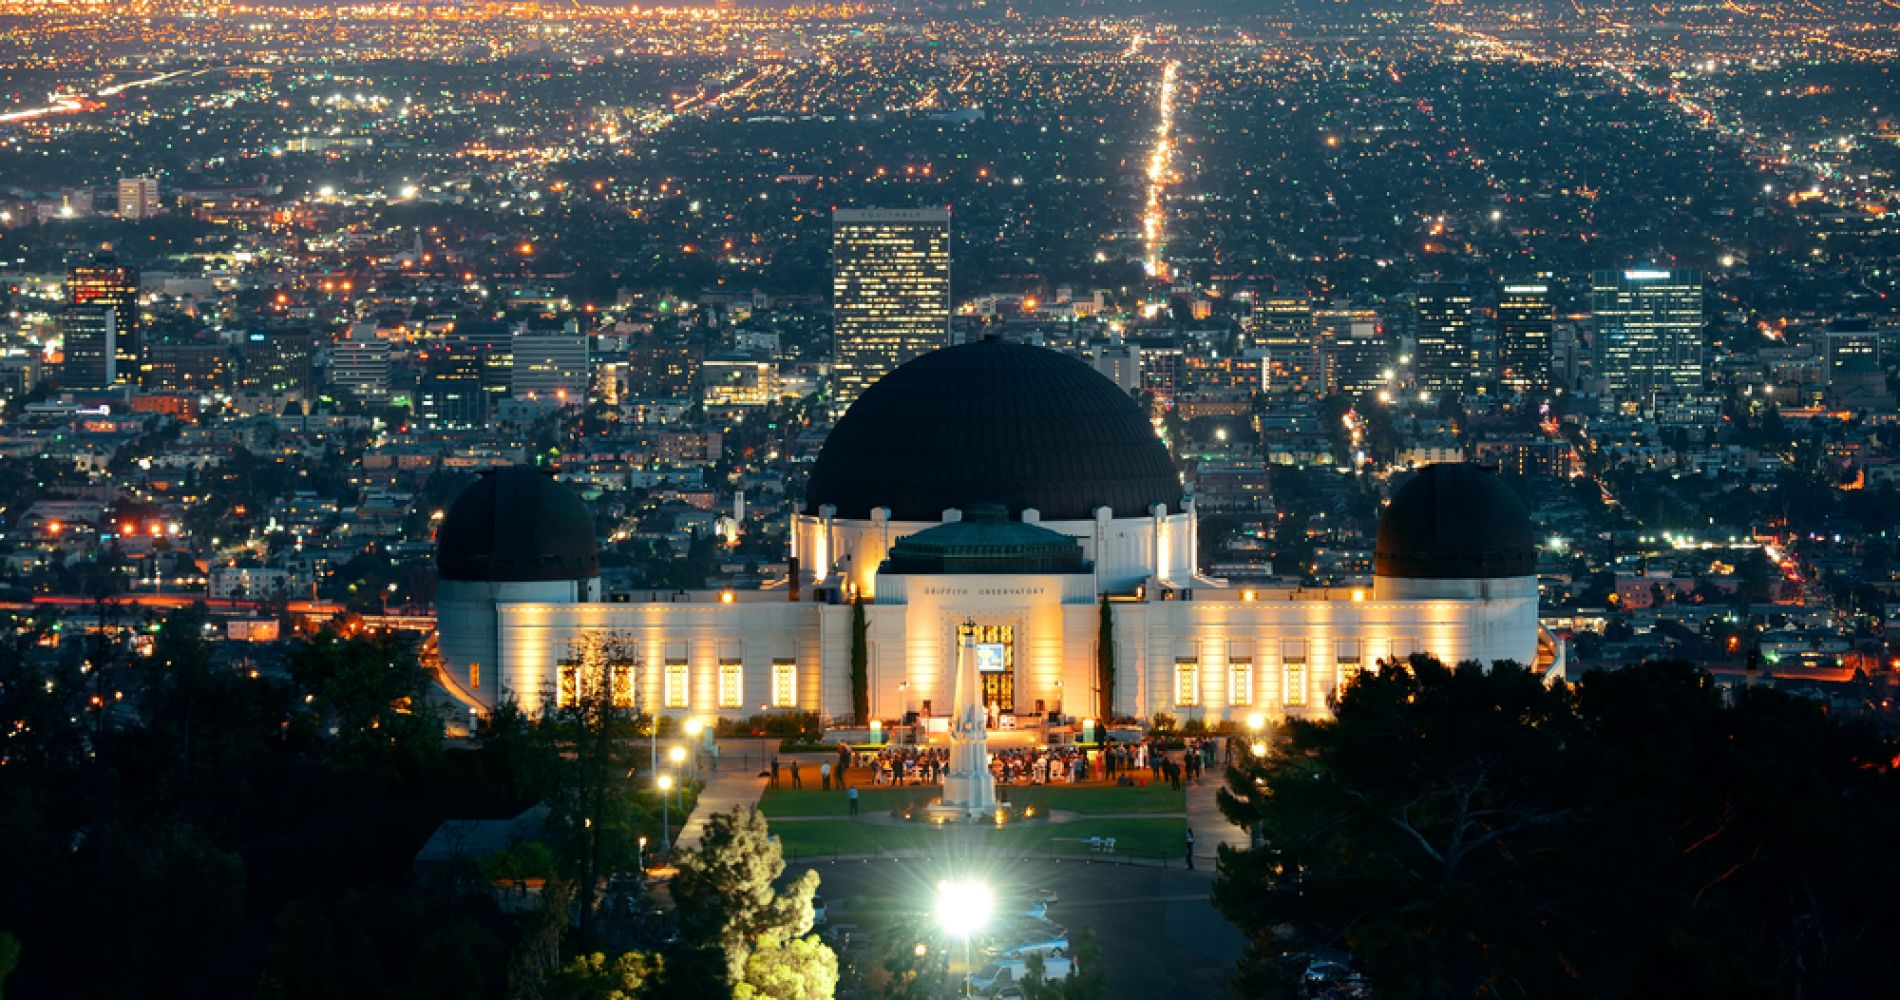 Watch the L.A. city from the Griffith Observatory & Park